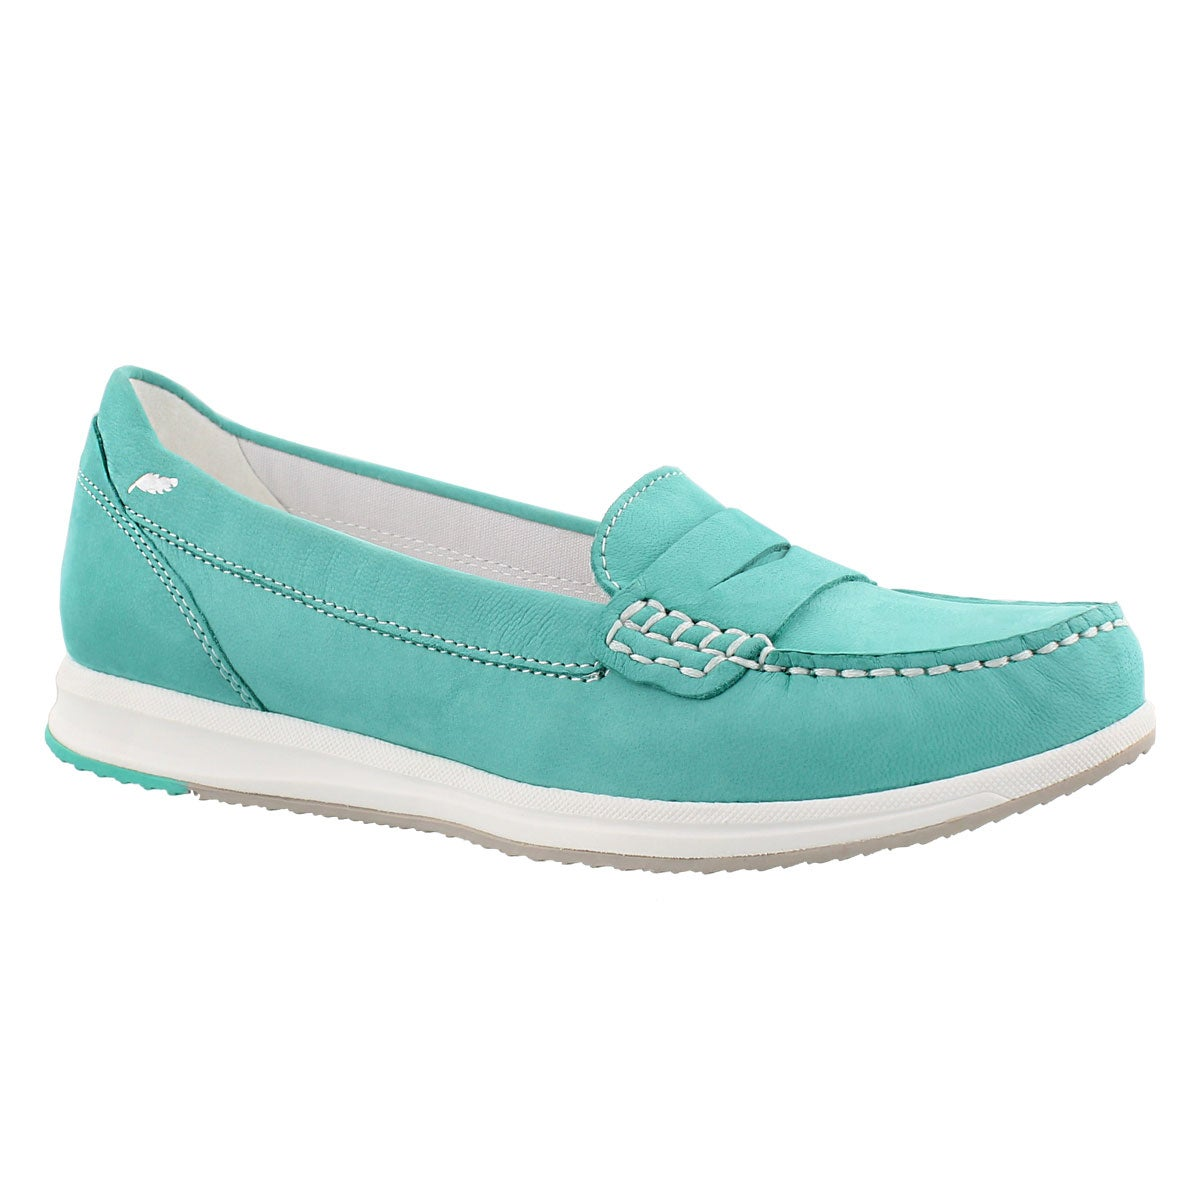 Lds Avery watersea slip on casual loafer